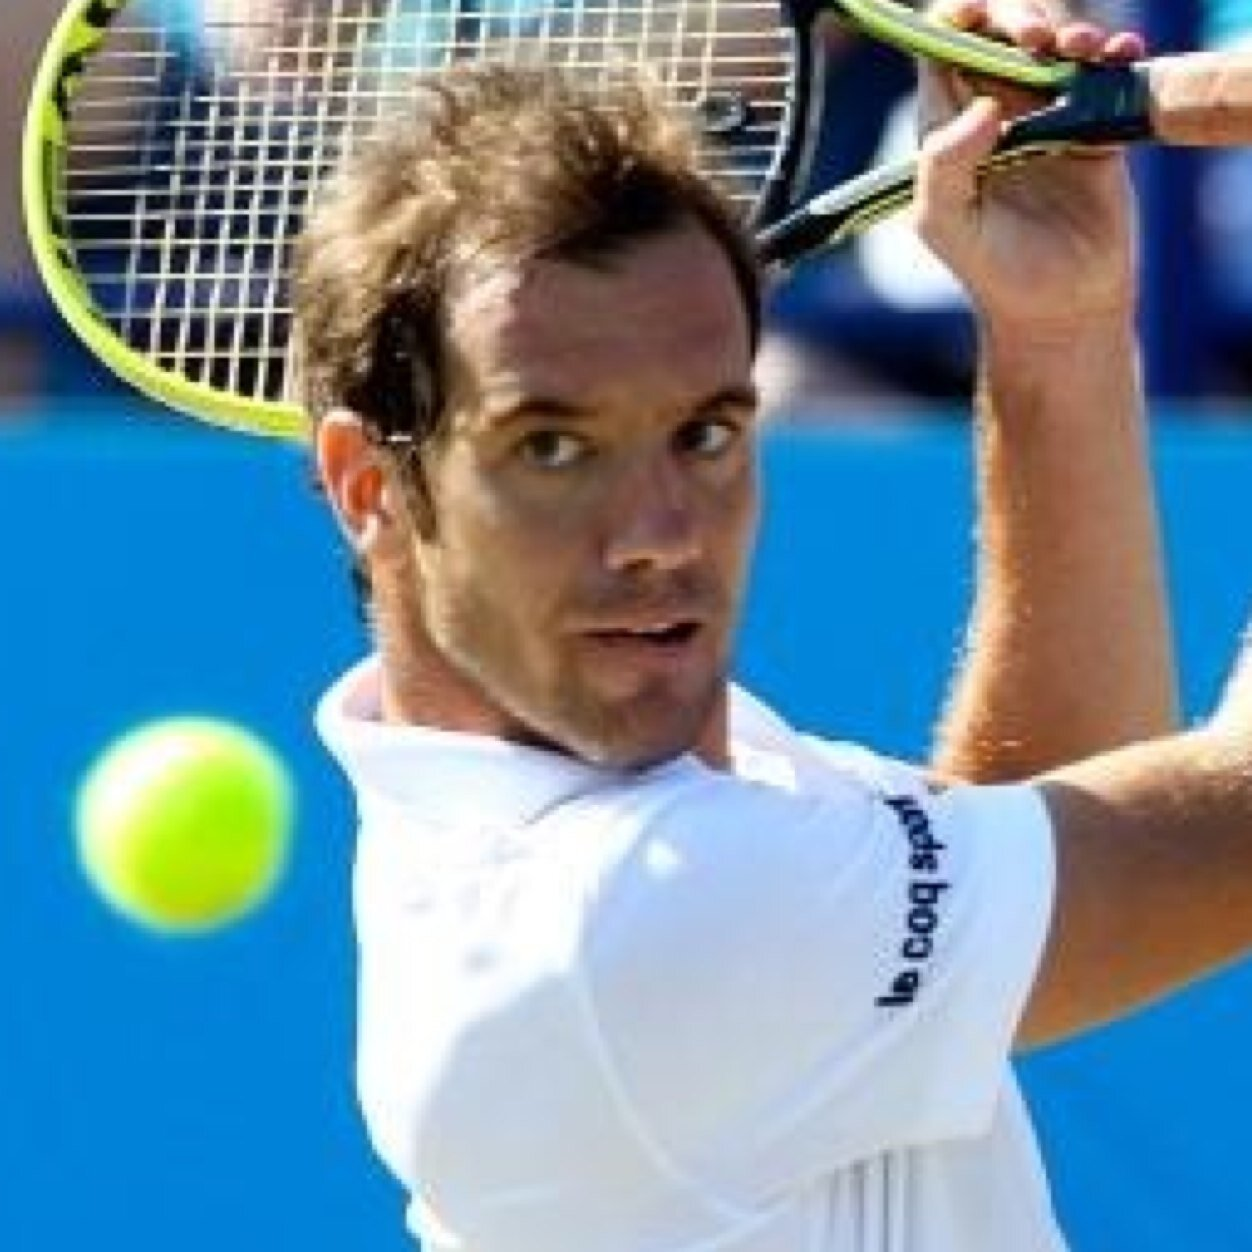 @richardgasquet1